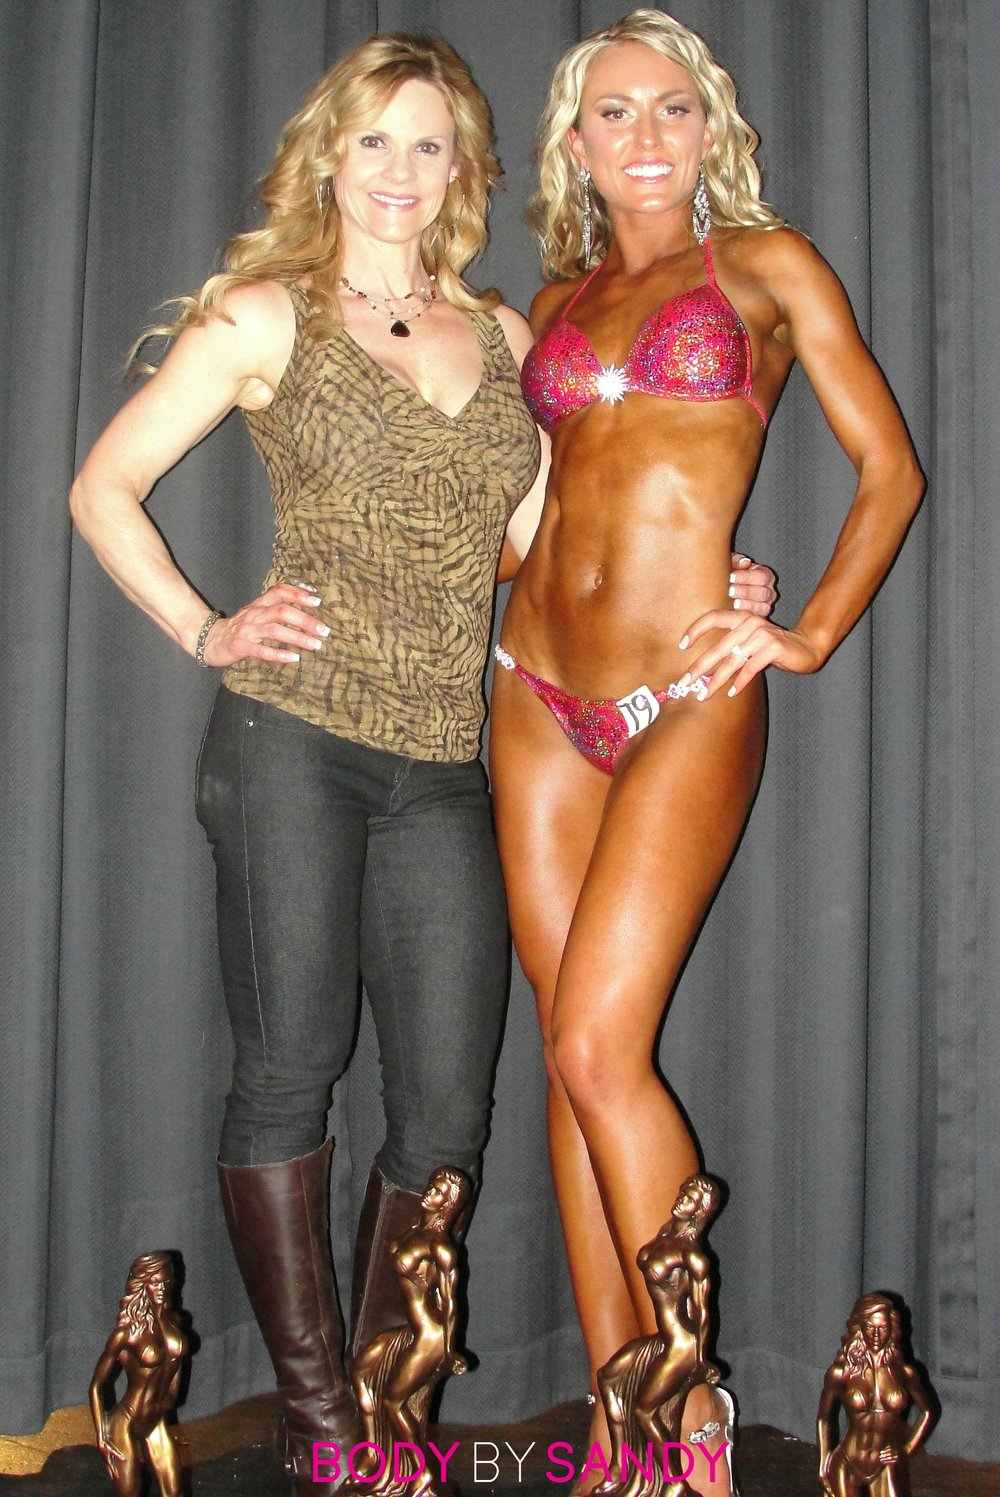 2012 NPC Utah Open & Ironman Natural-Me and Stevee Hight - Overall.jpg